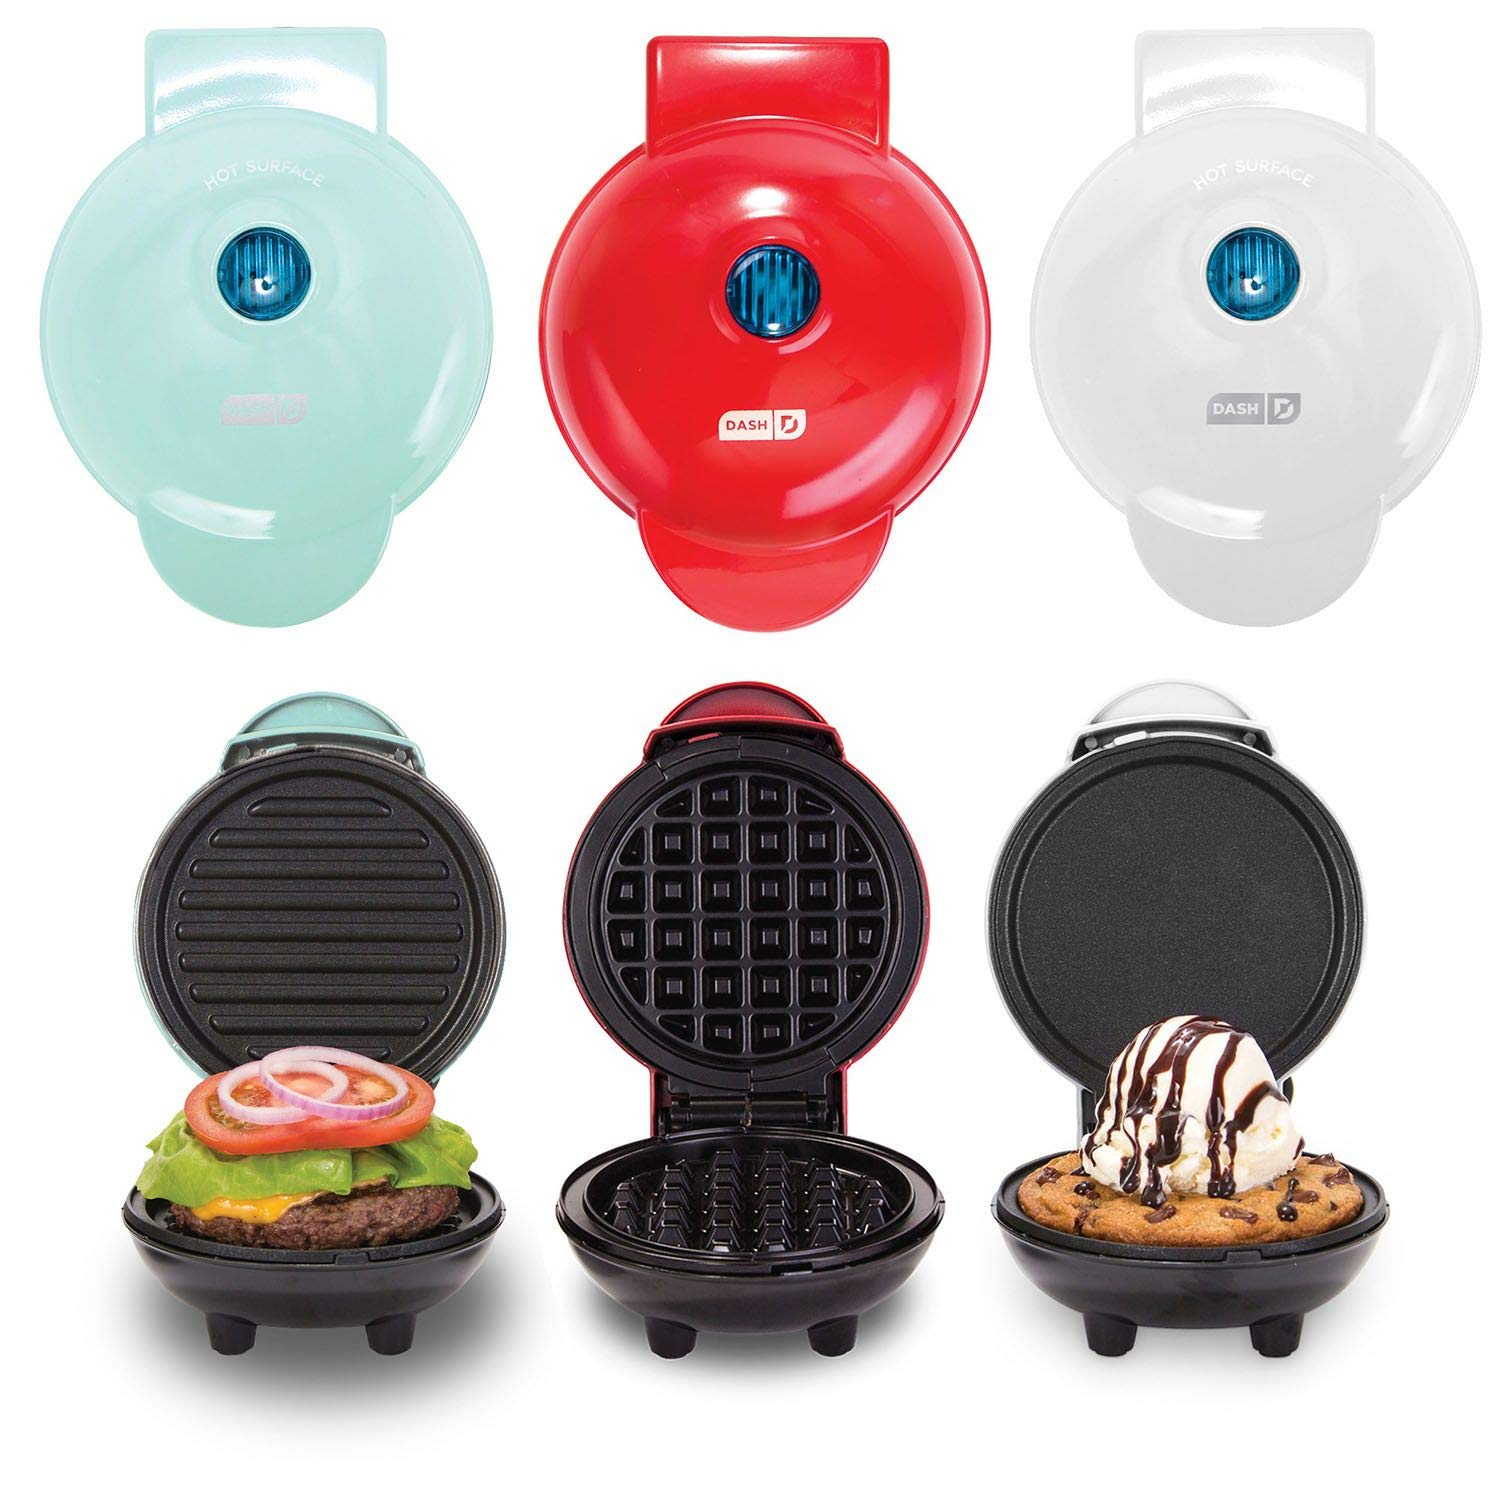 Dash Mini Maker Griddle, Waffle Maker and Grill Set (Assorted Colors) (Classic) by DASH